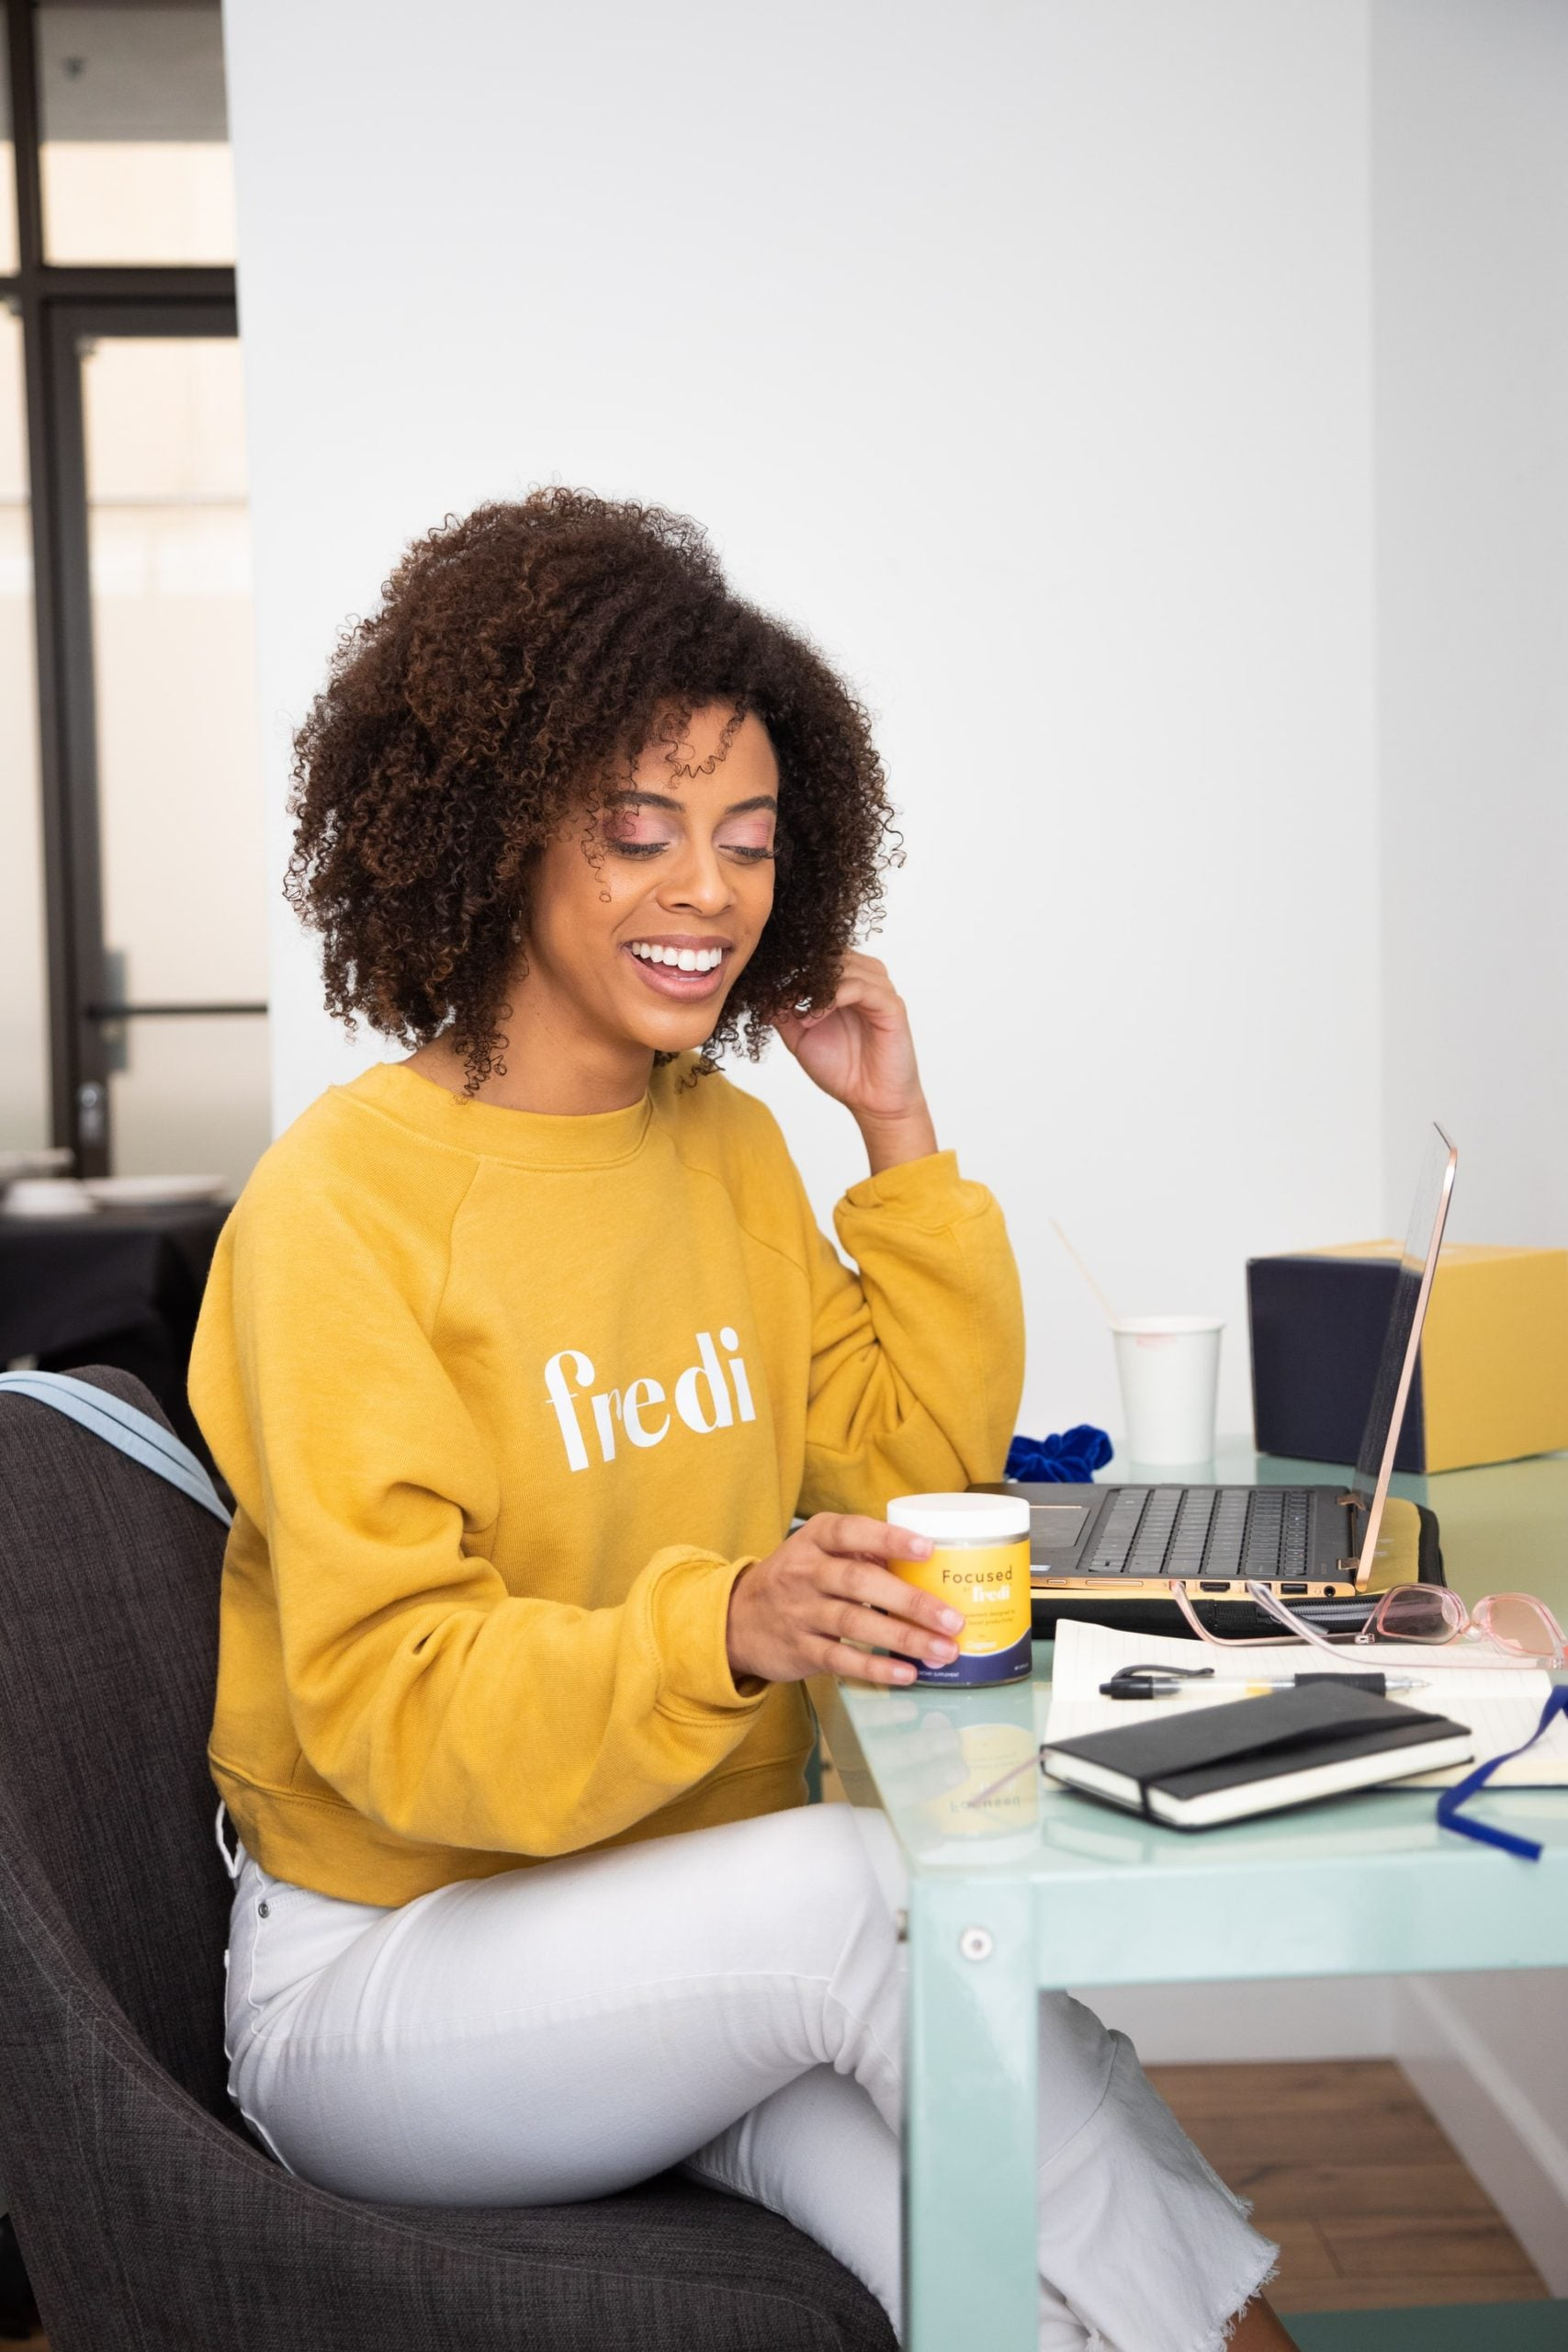 woman in yellow jumper smiling at coffee